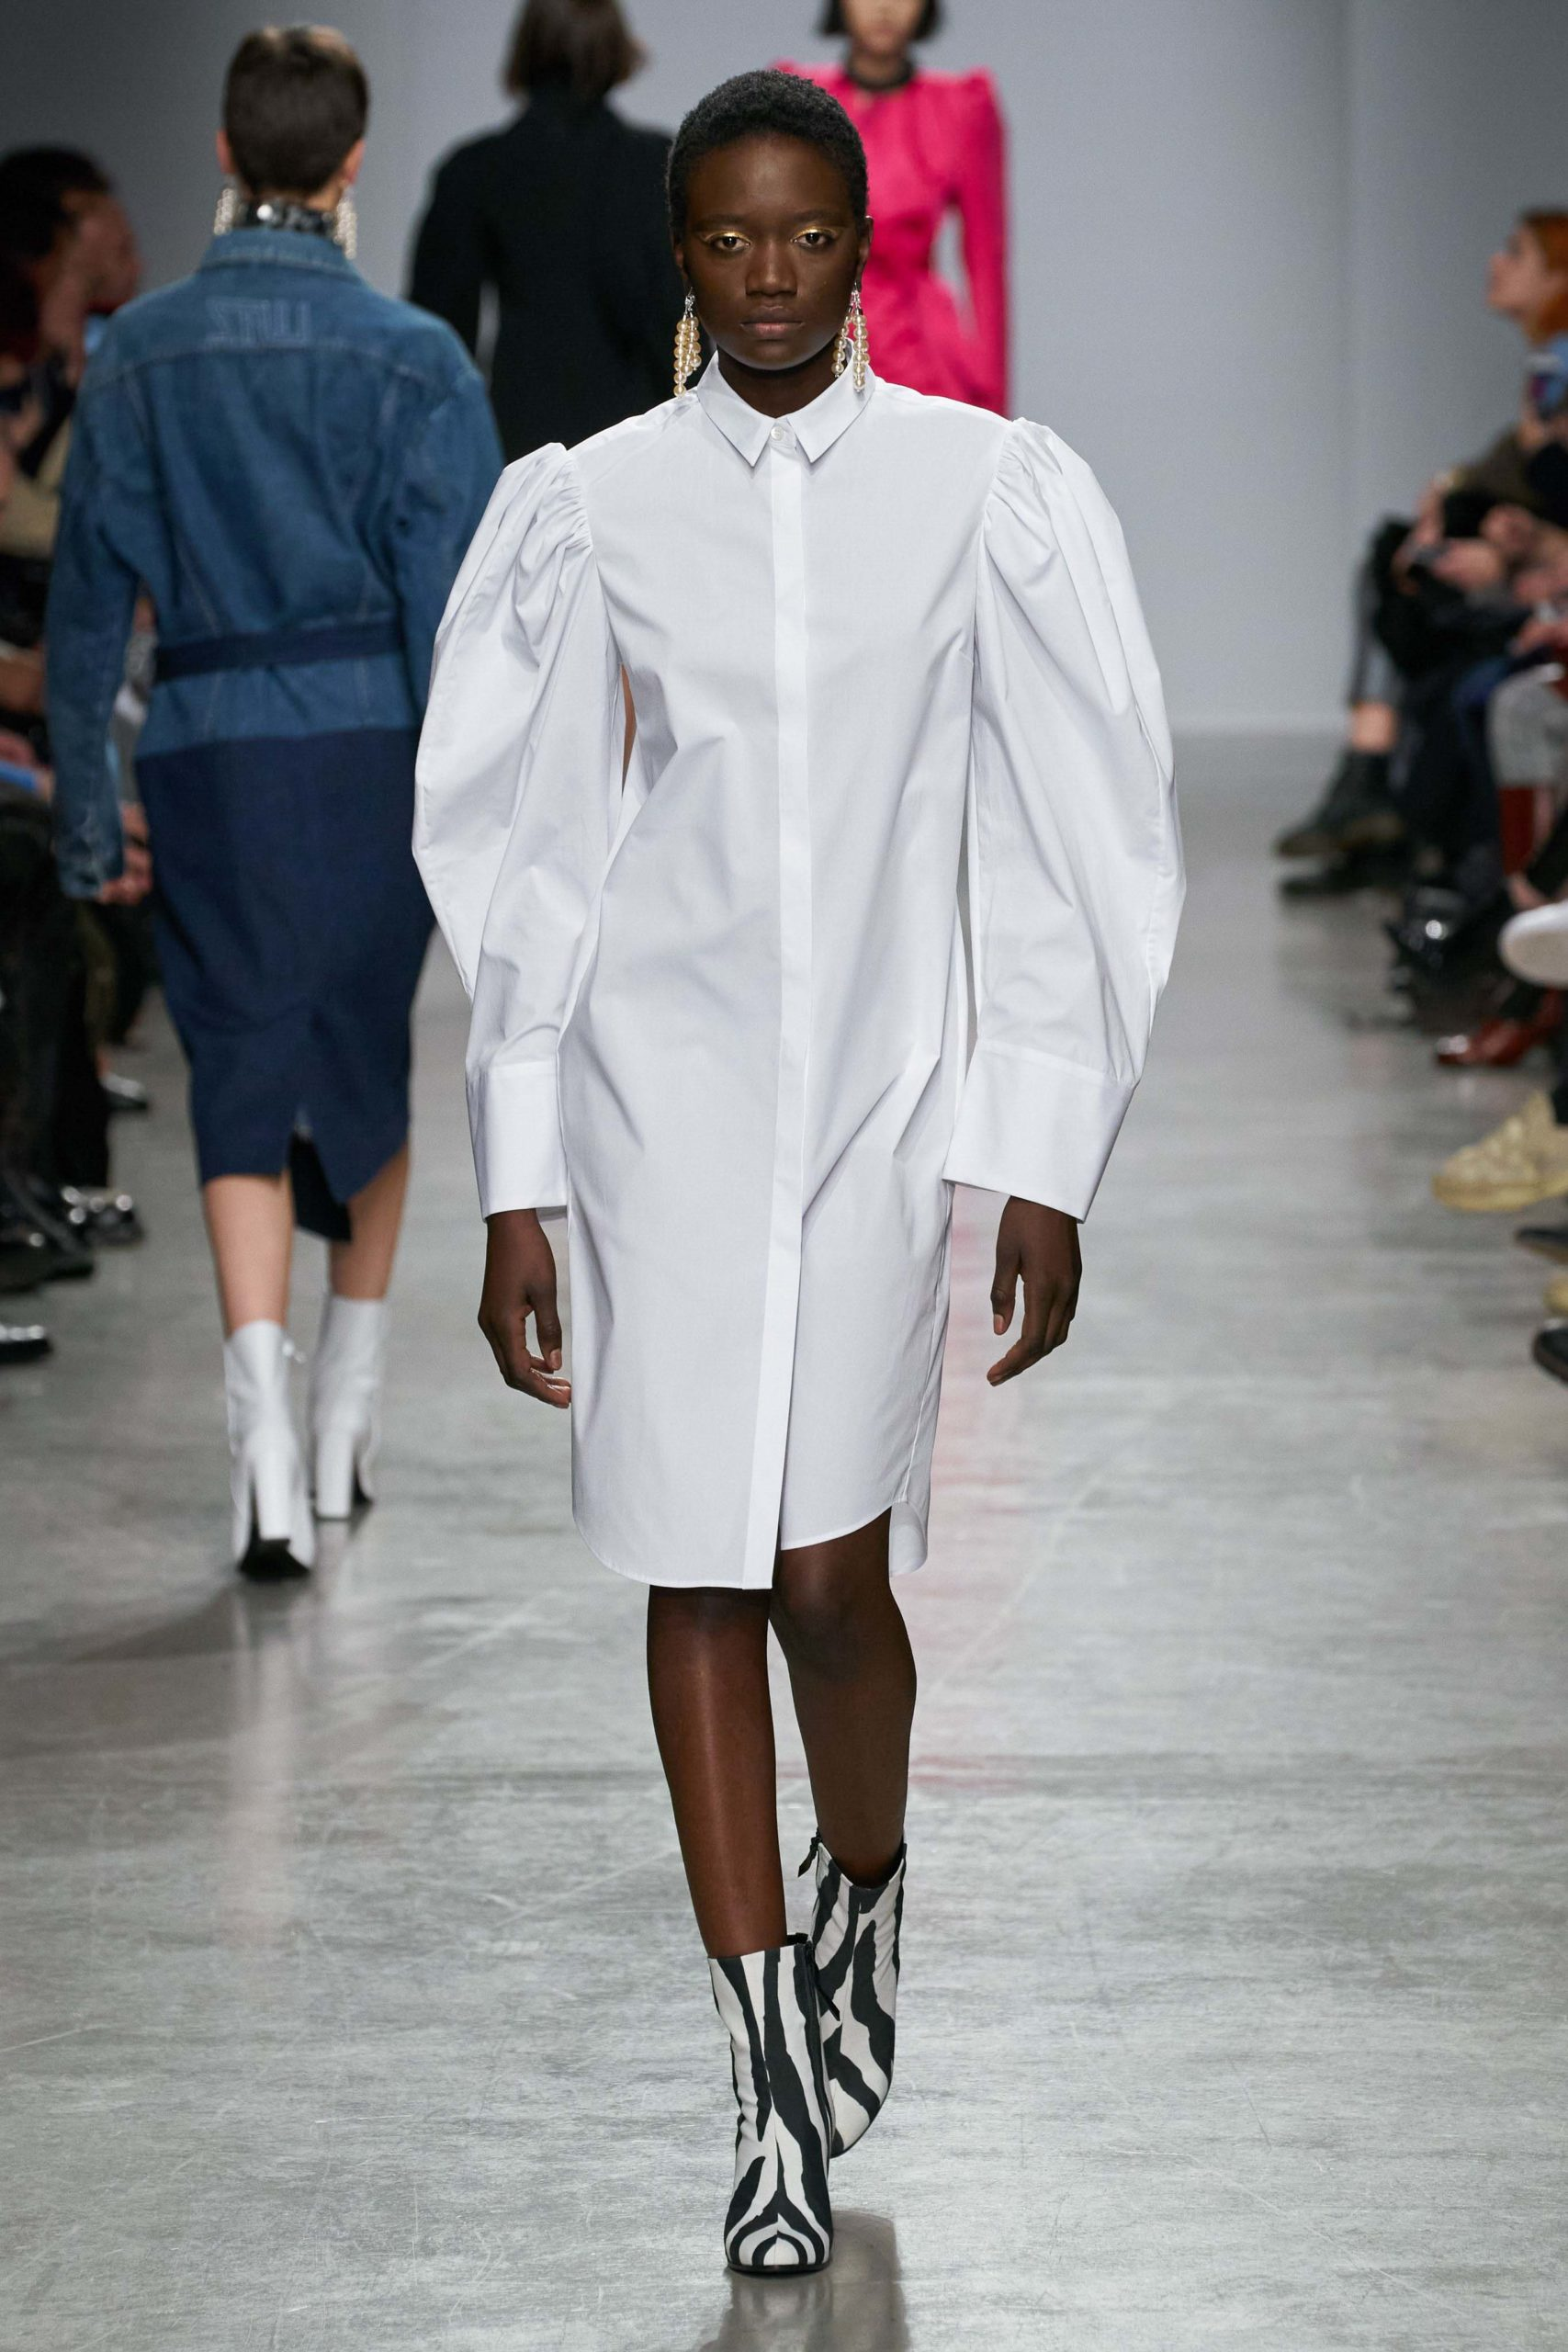 Lutz Huelle Fall 2020 trends runway coverage Ready To Wear Vogue manche bold sleeves